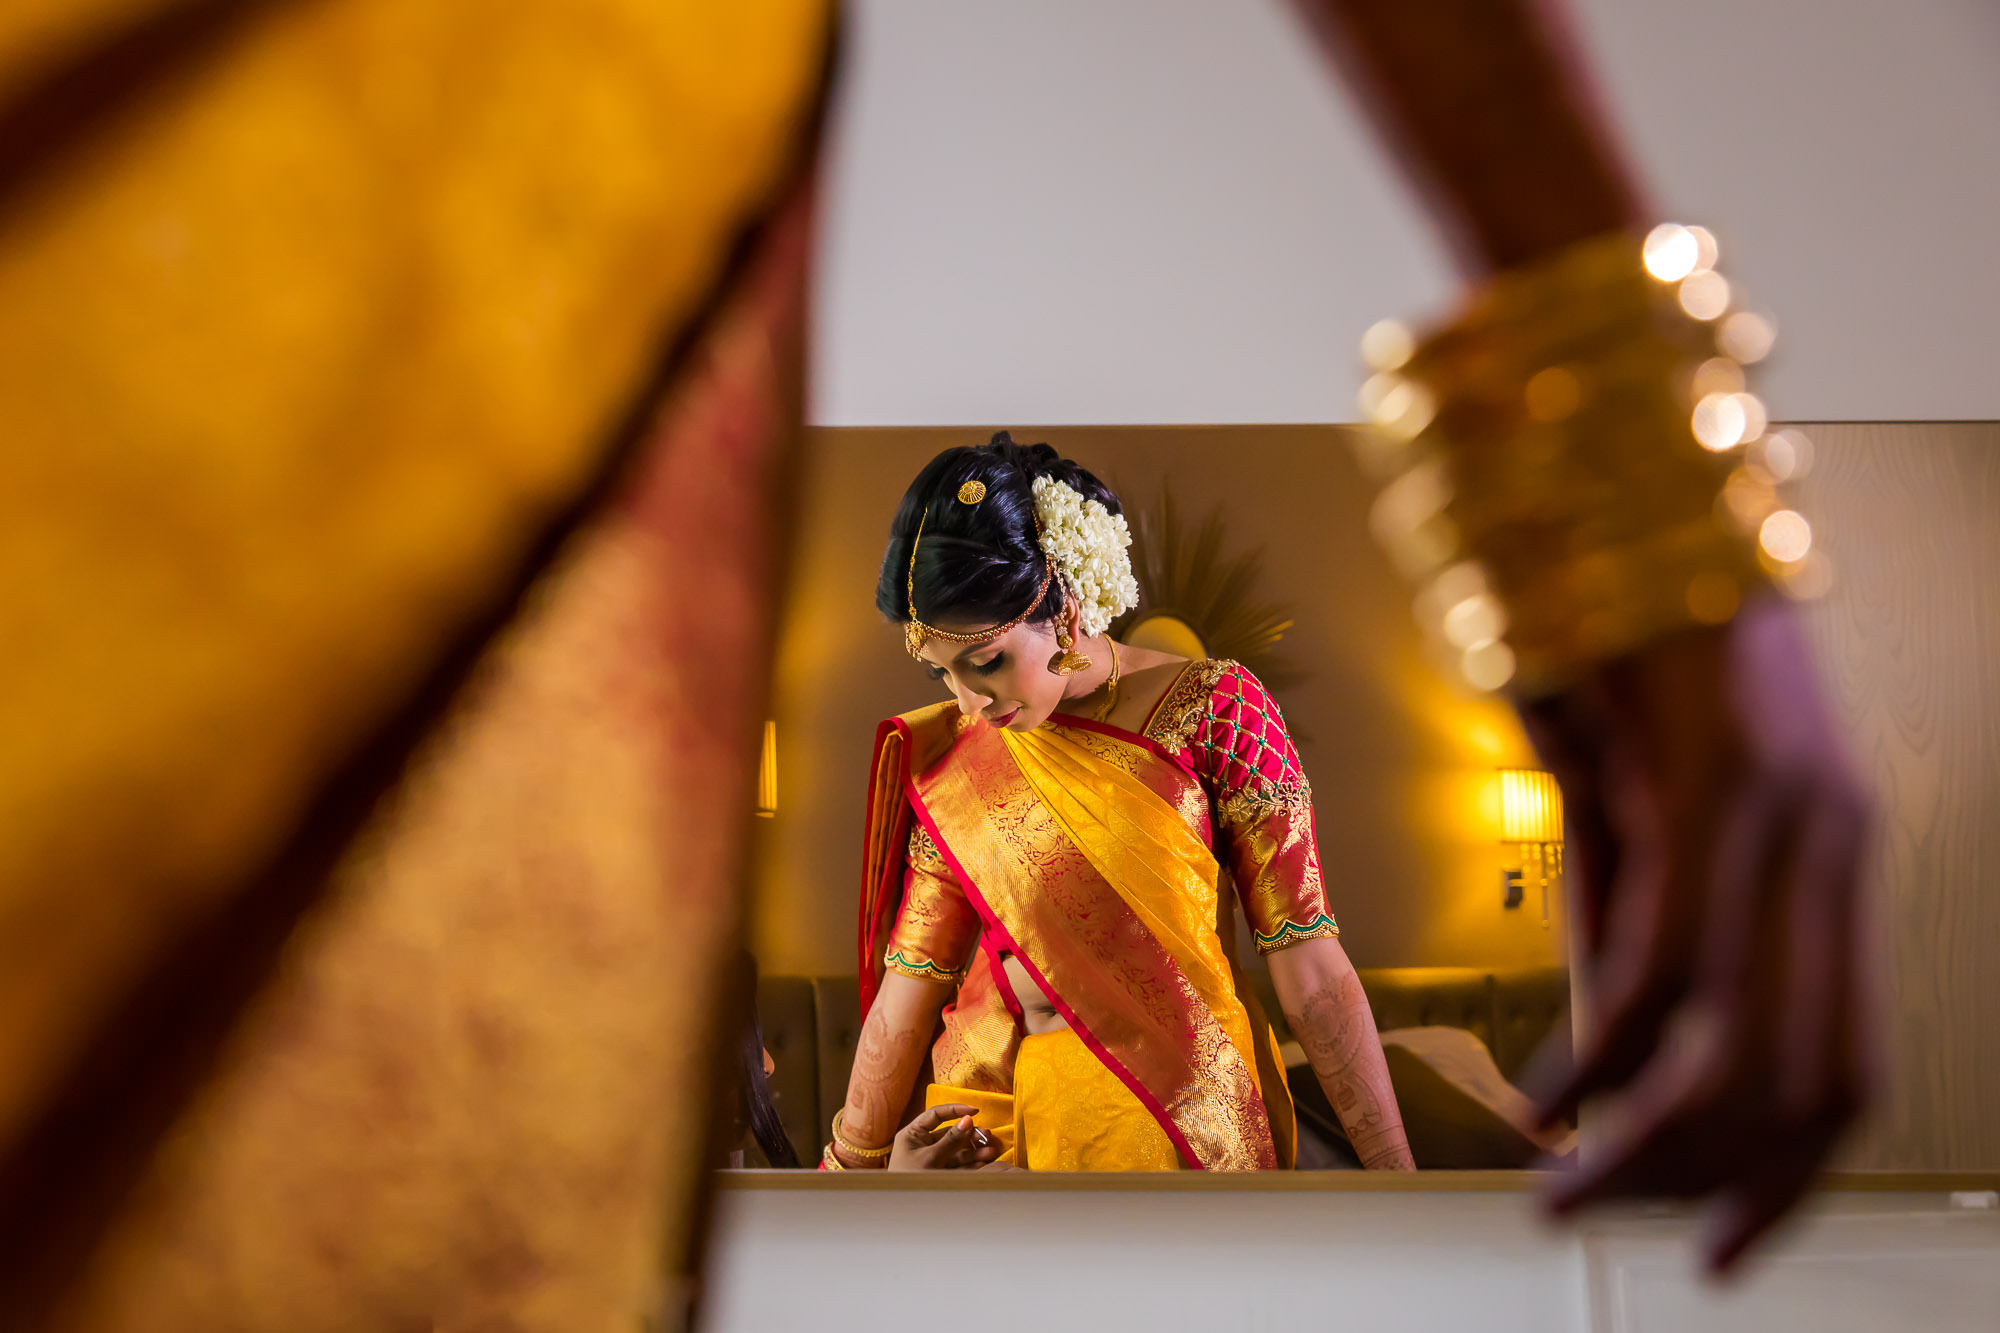 asian-wedding-hindu-tamil-photographer-heythorpe-oxford-0023.jpg